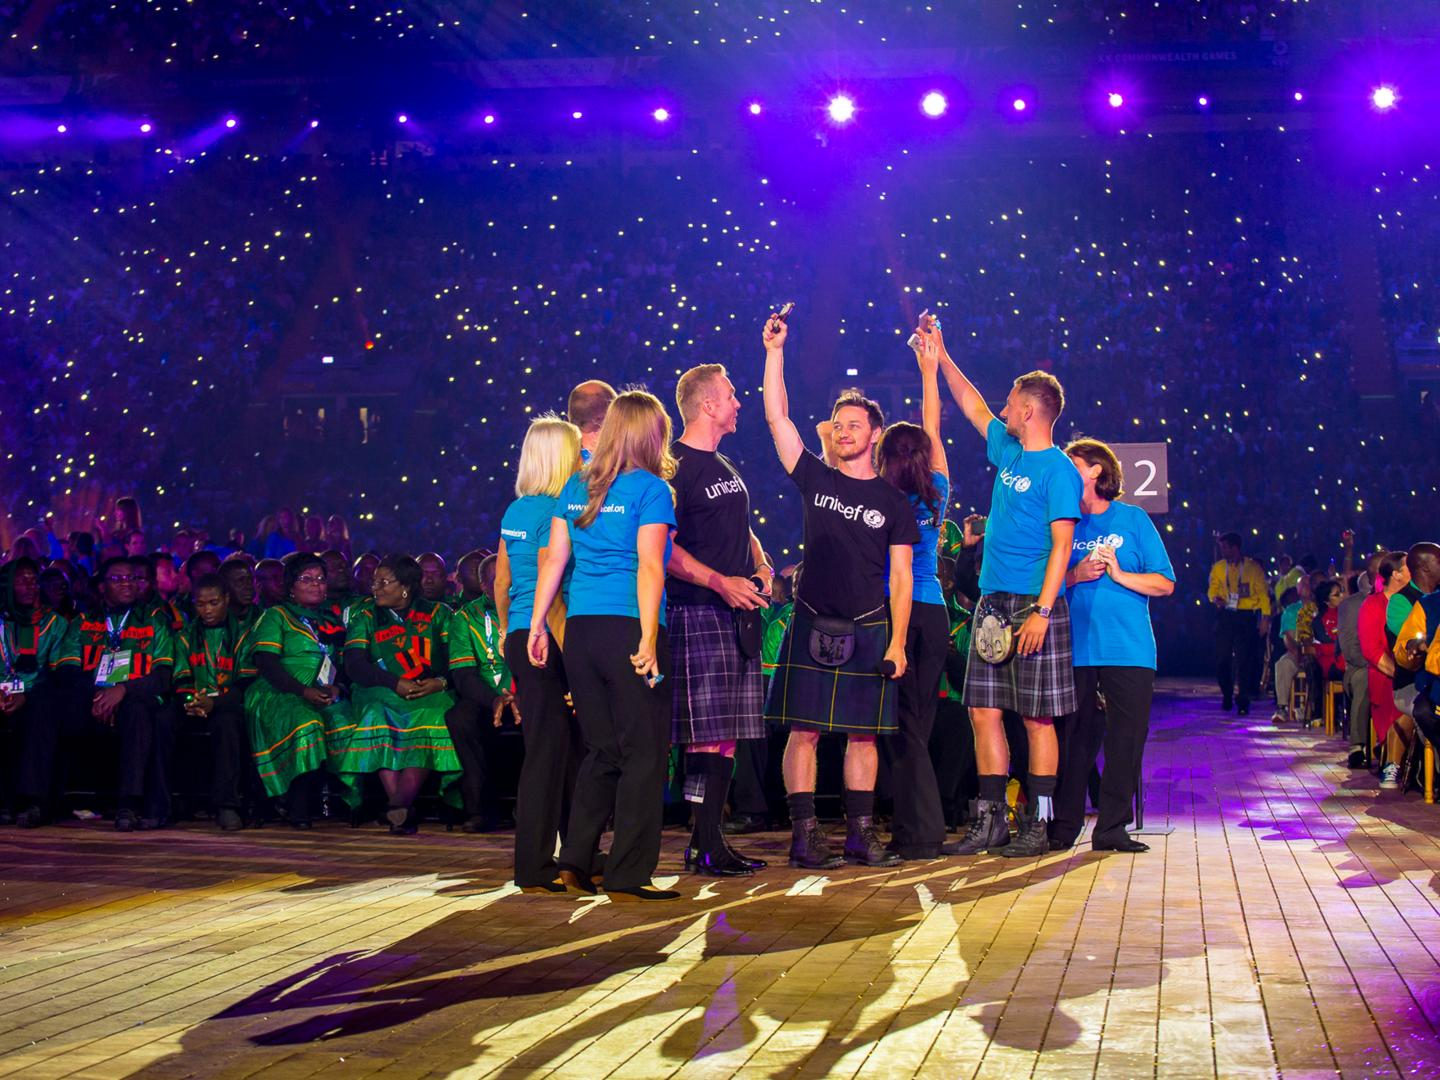 UNICEF at the 2014 Glasgow Commonwealth Games Thumbnail